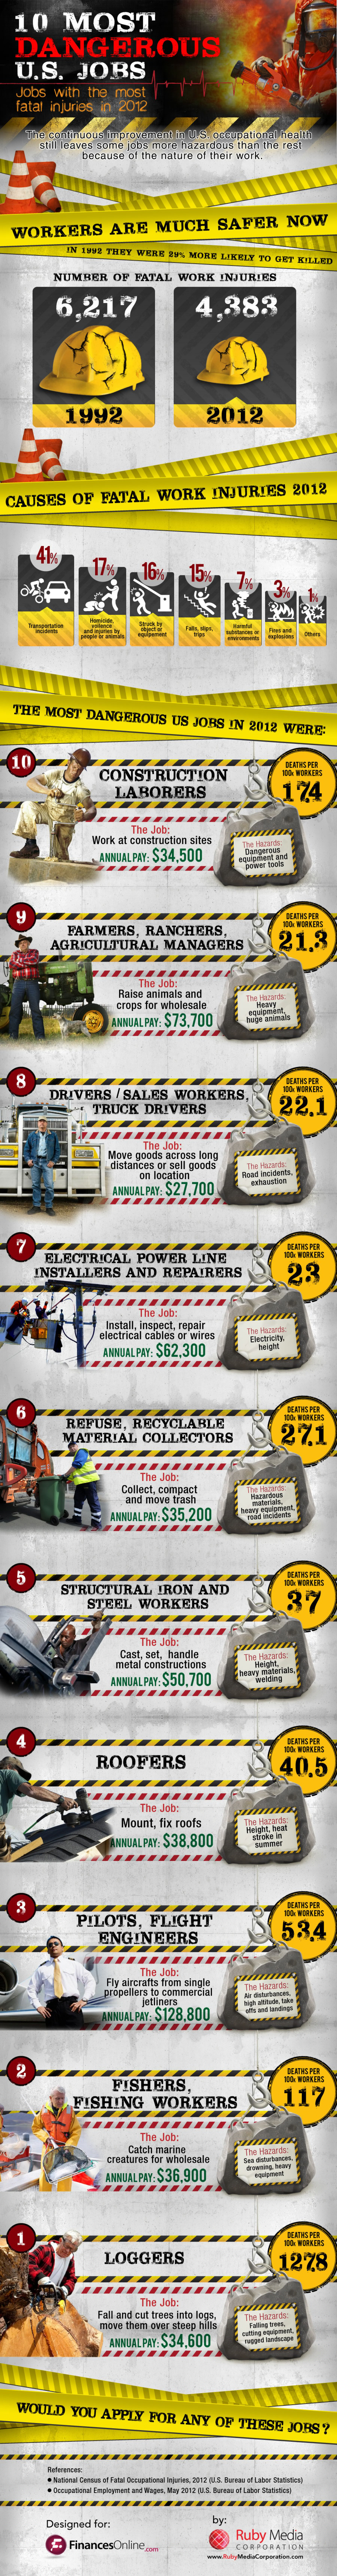 Top 10 most dangerous jobs in the US Infographic